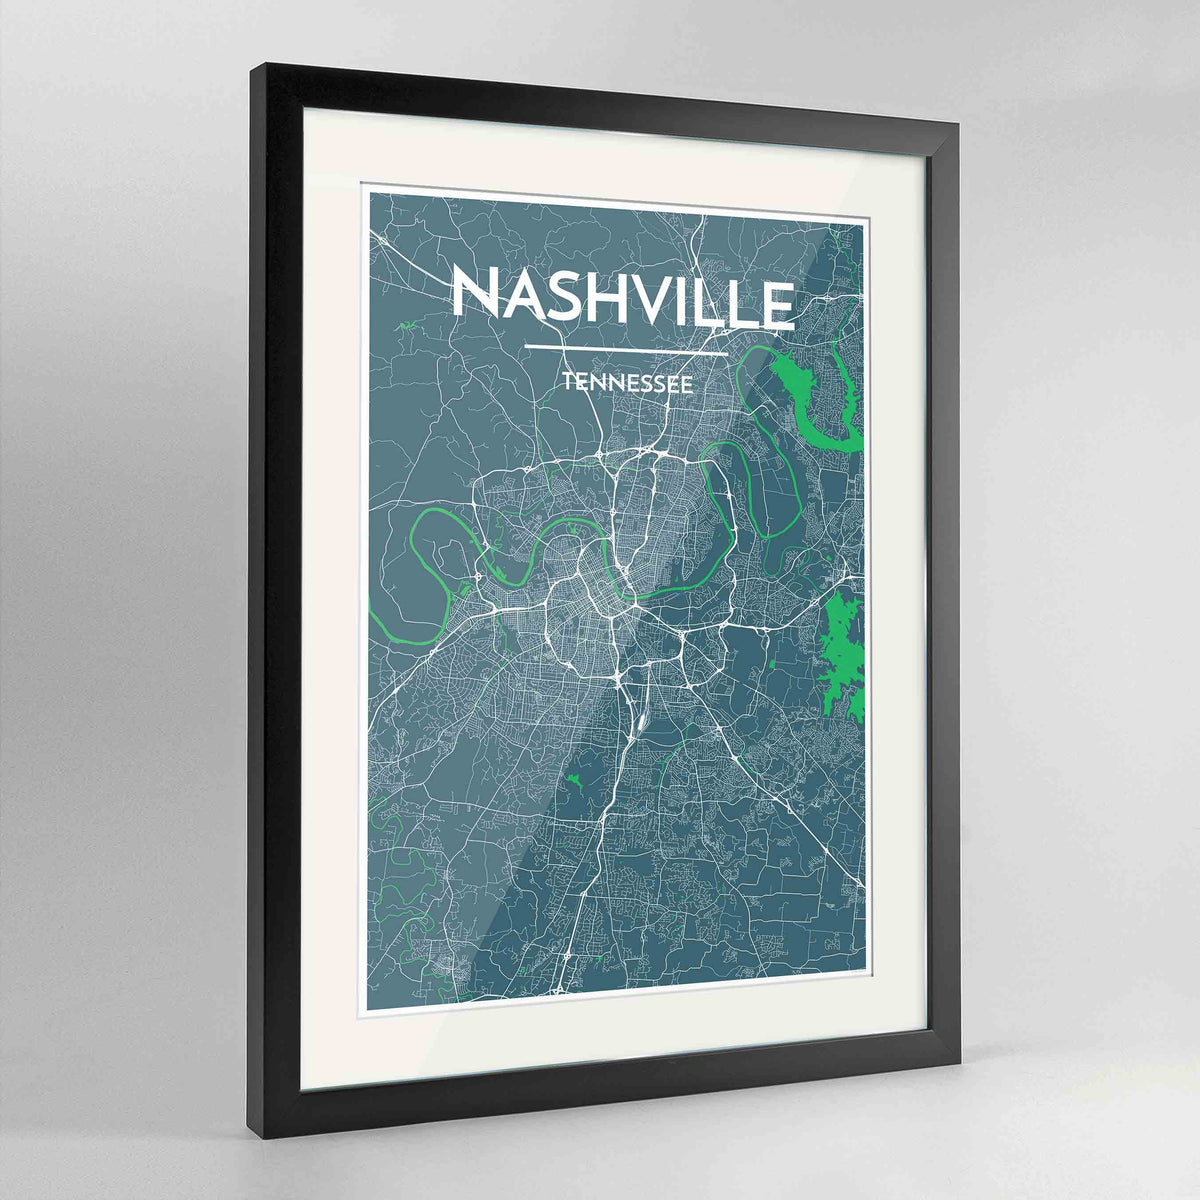 "Framed Nashville Map Art Print 24x36"" Contemporary Black frame Point Two Design Group"